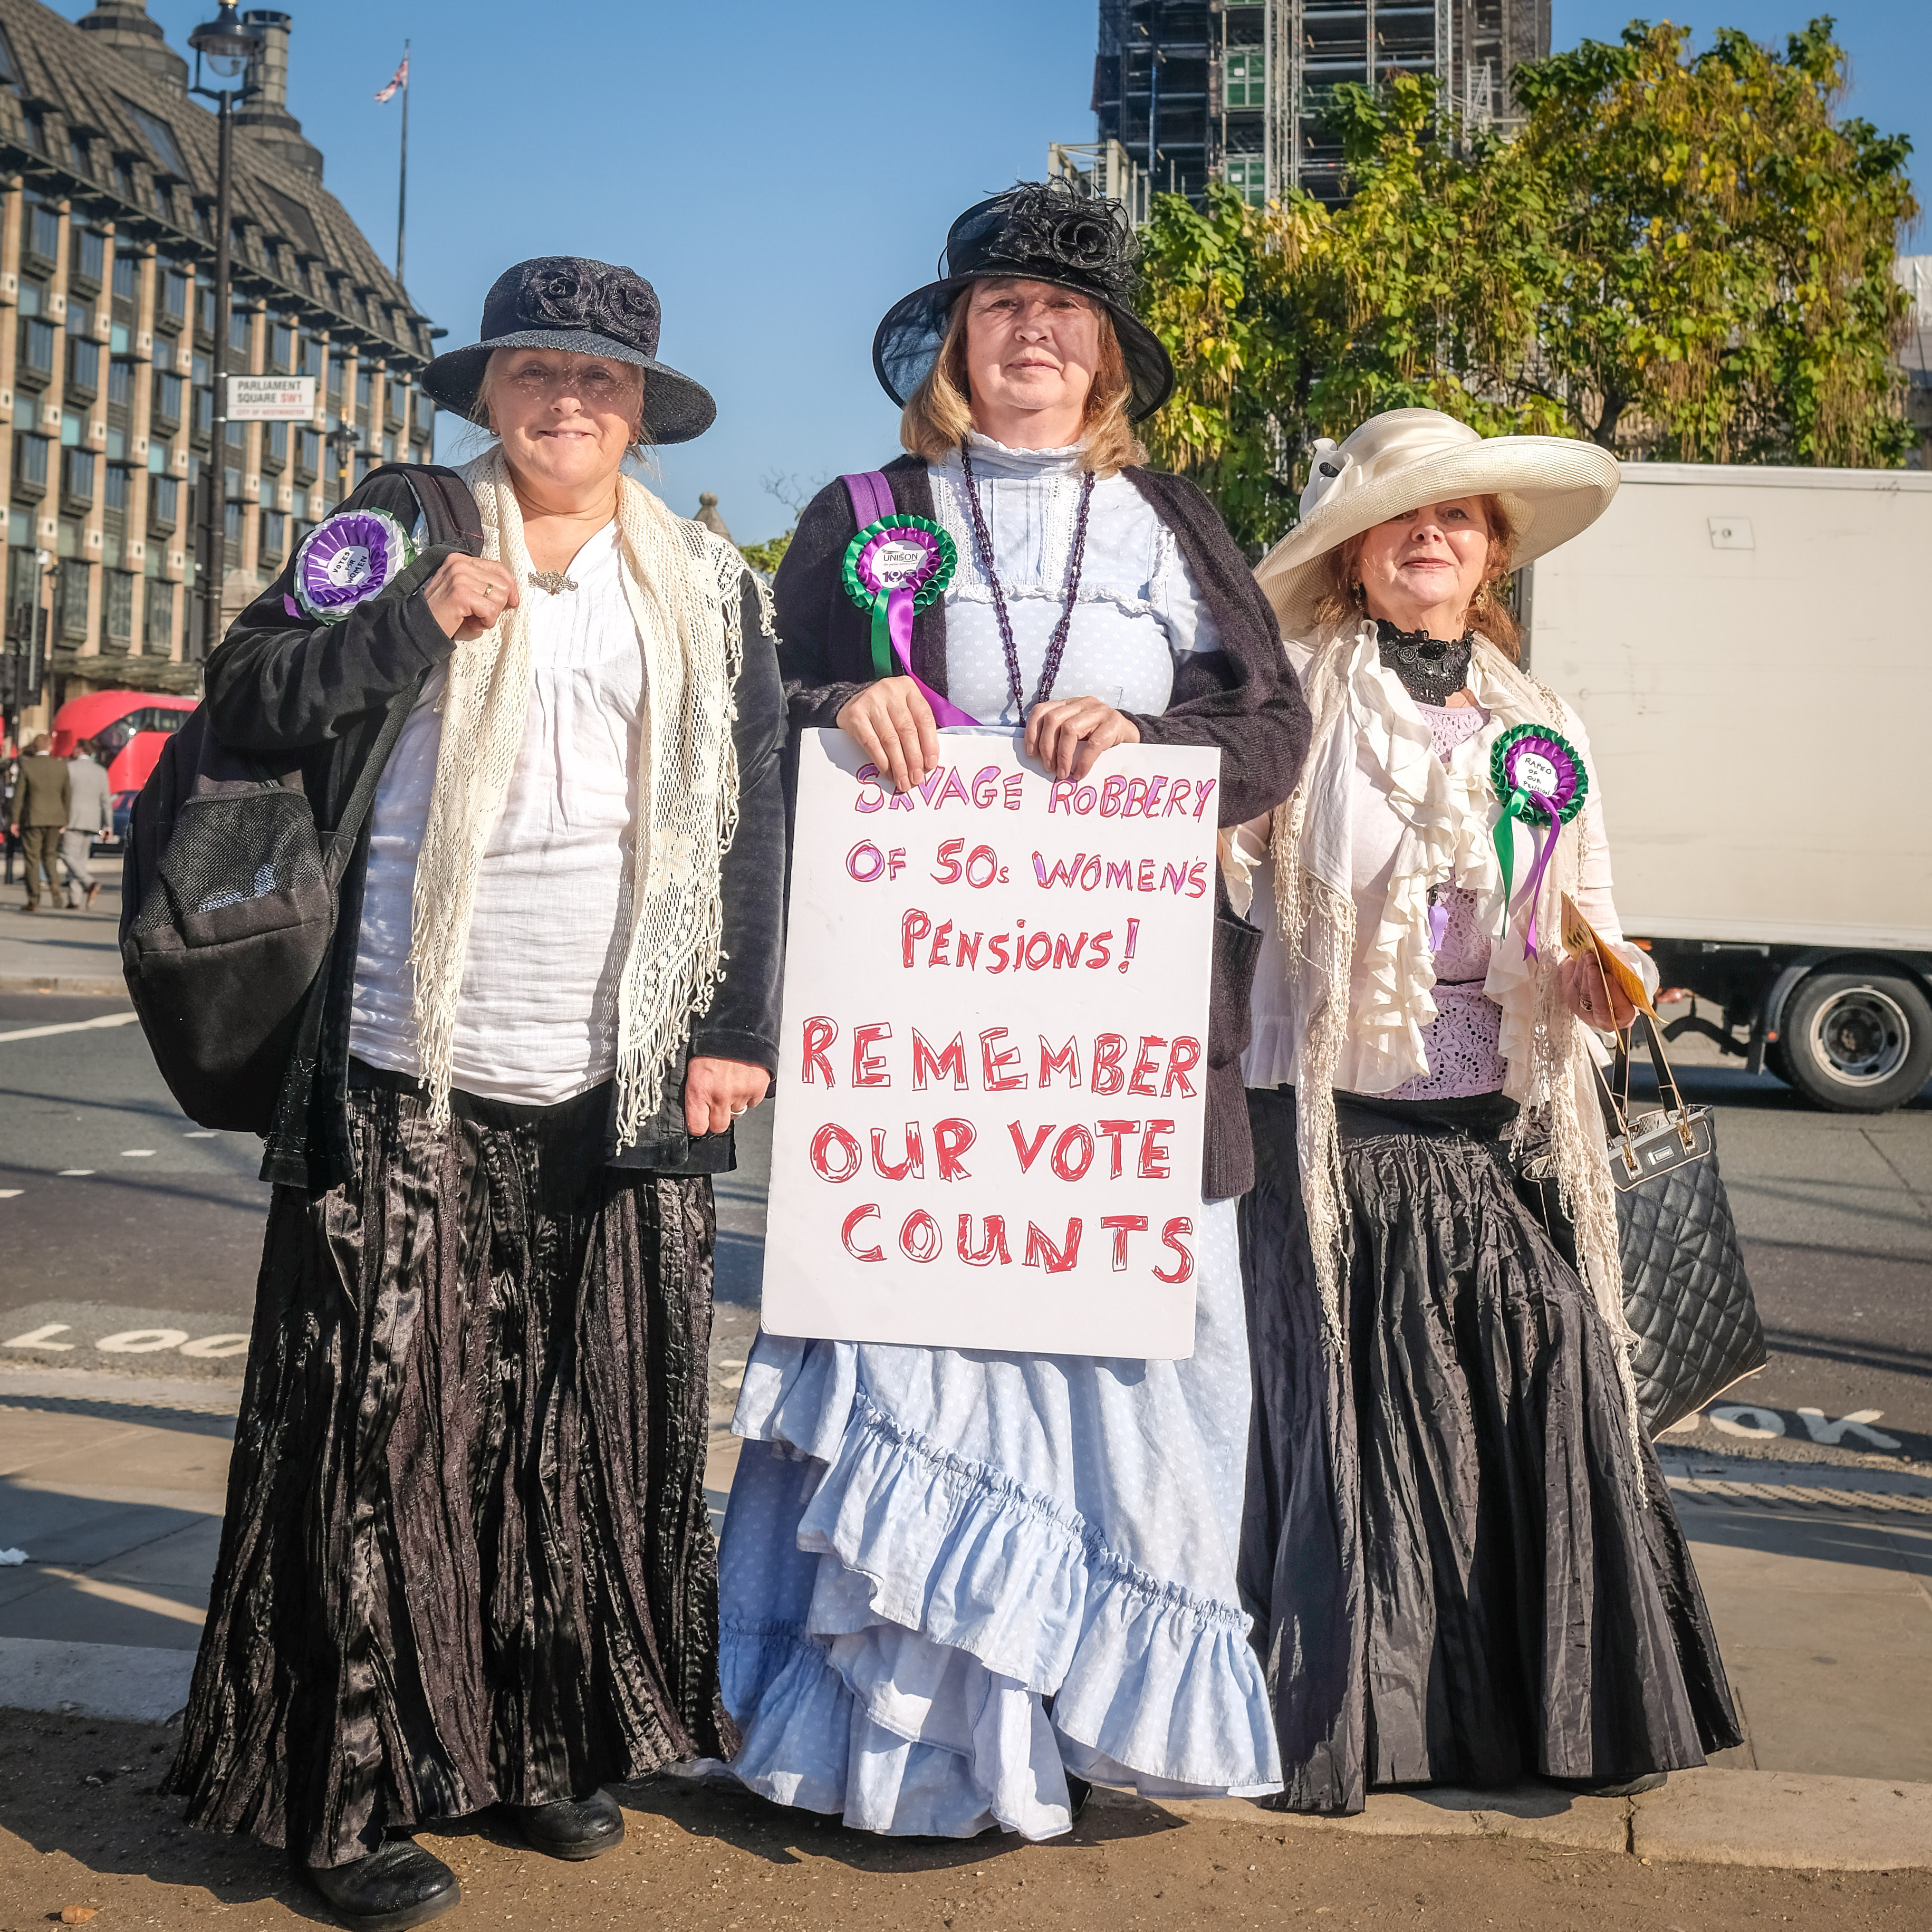 Women's Pension Rally Parliament Square 2018